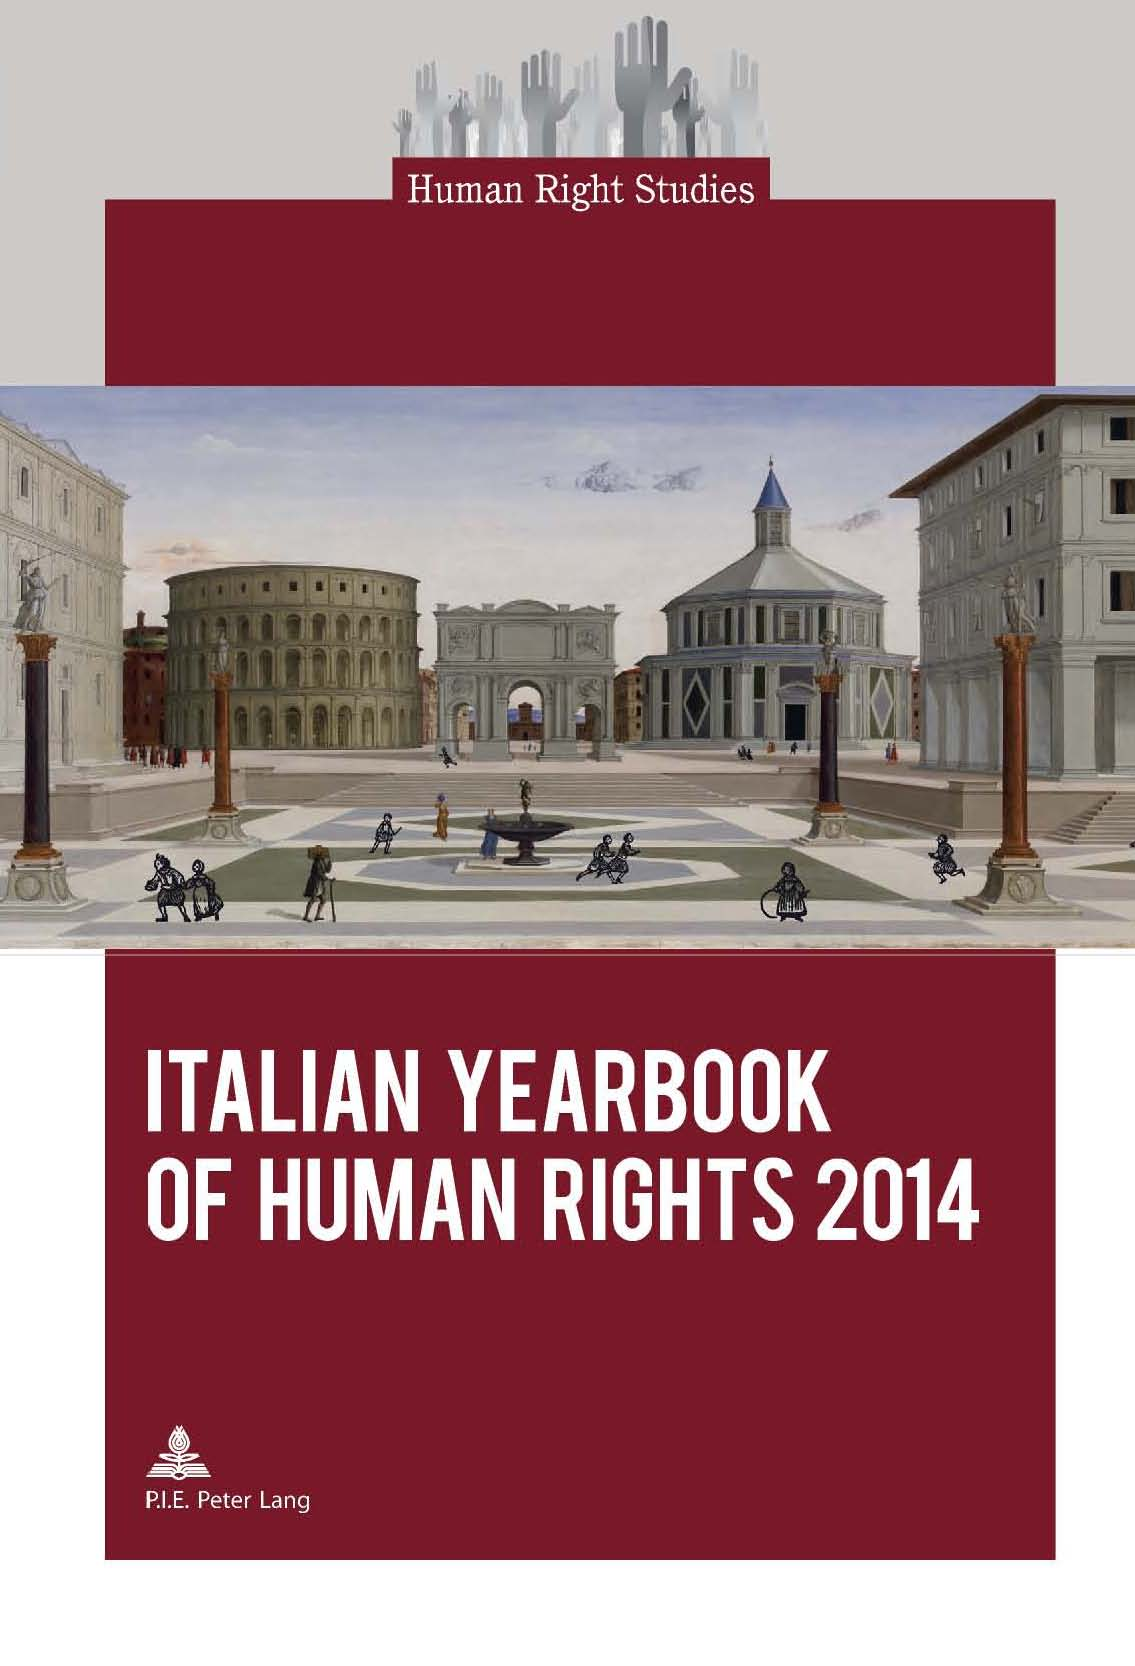 Cover of the Italian Yearbook of Human Rights 2014,  Brussels, Peter Lang, 2014